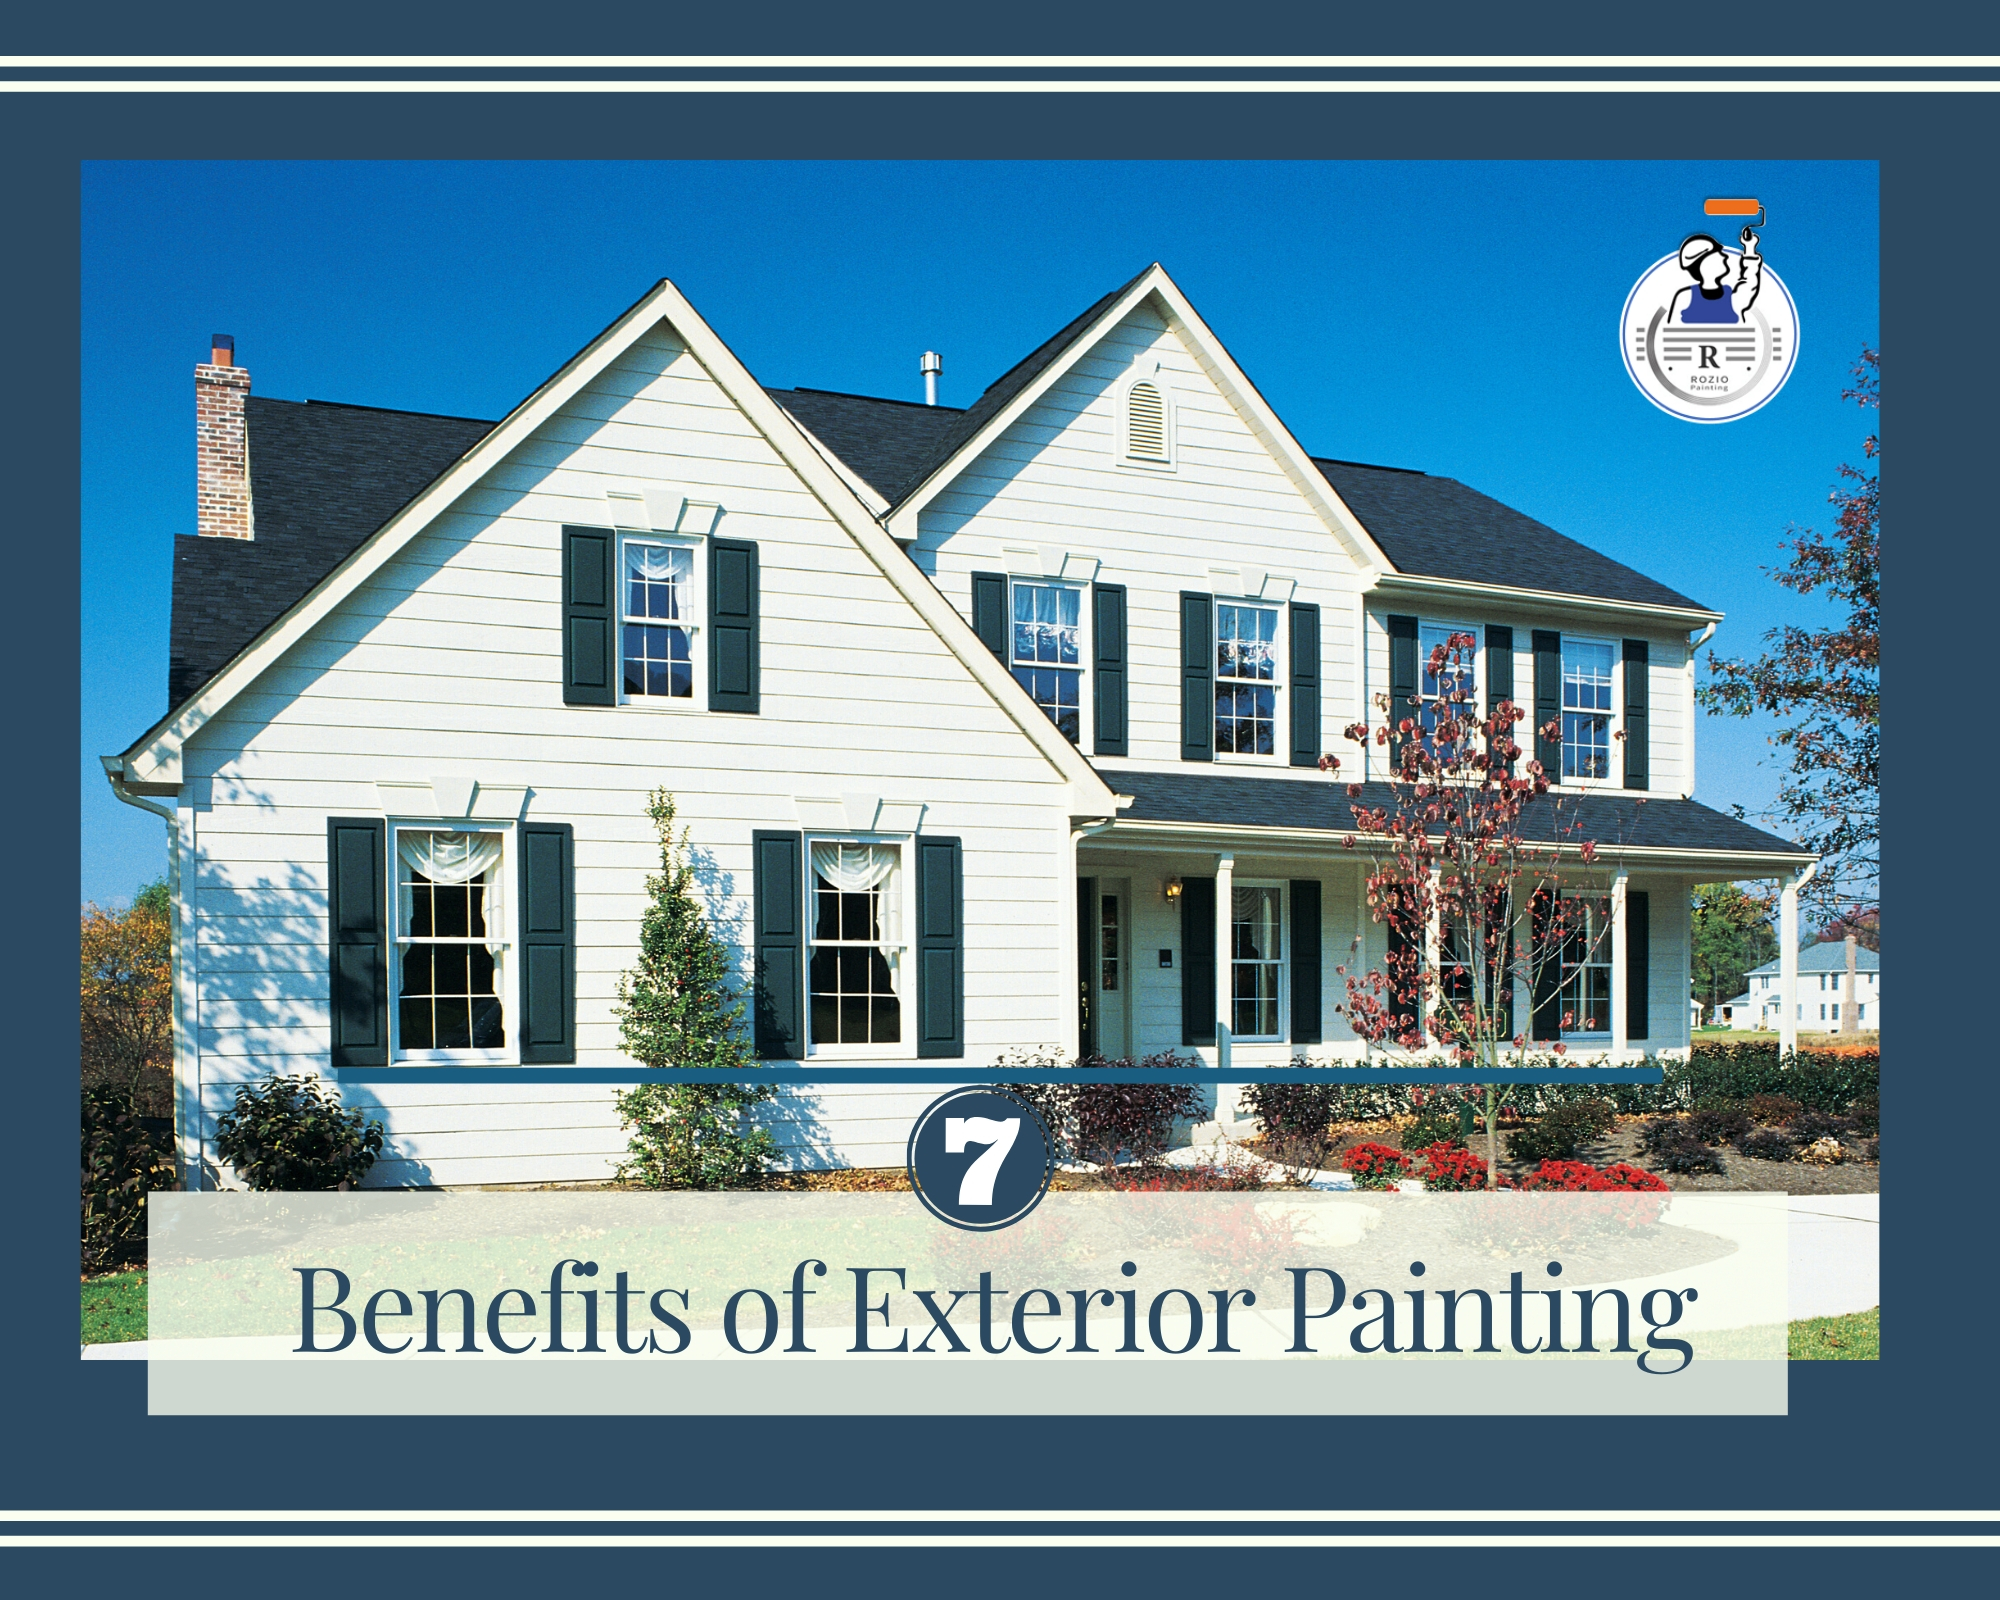 Top 7 Benefits of Exterior Painting